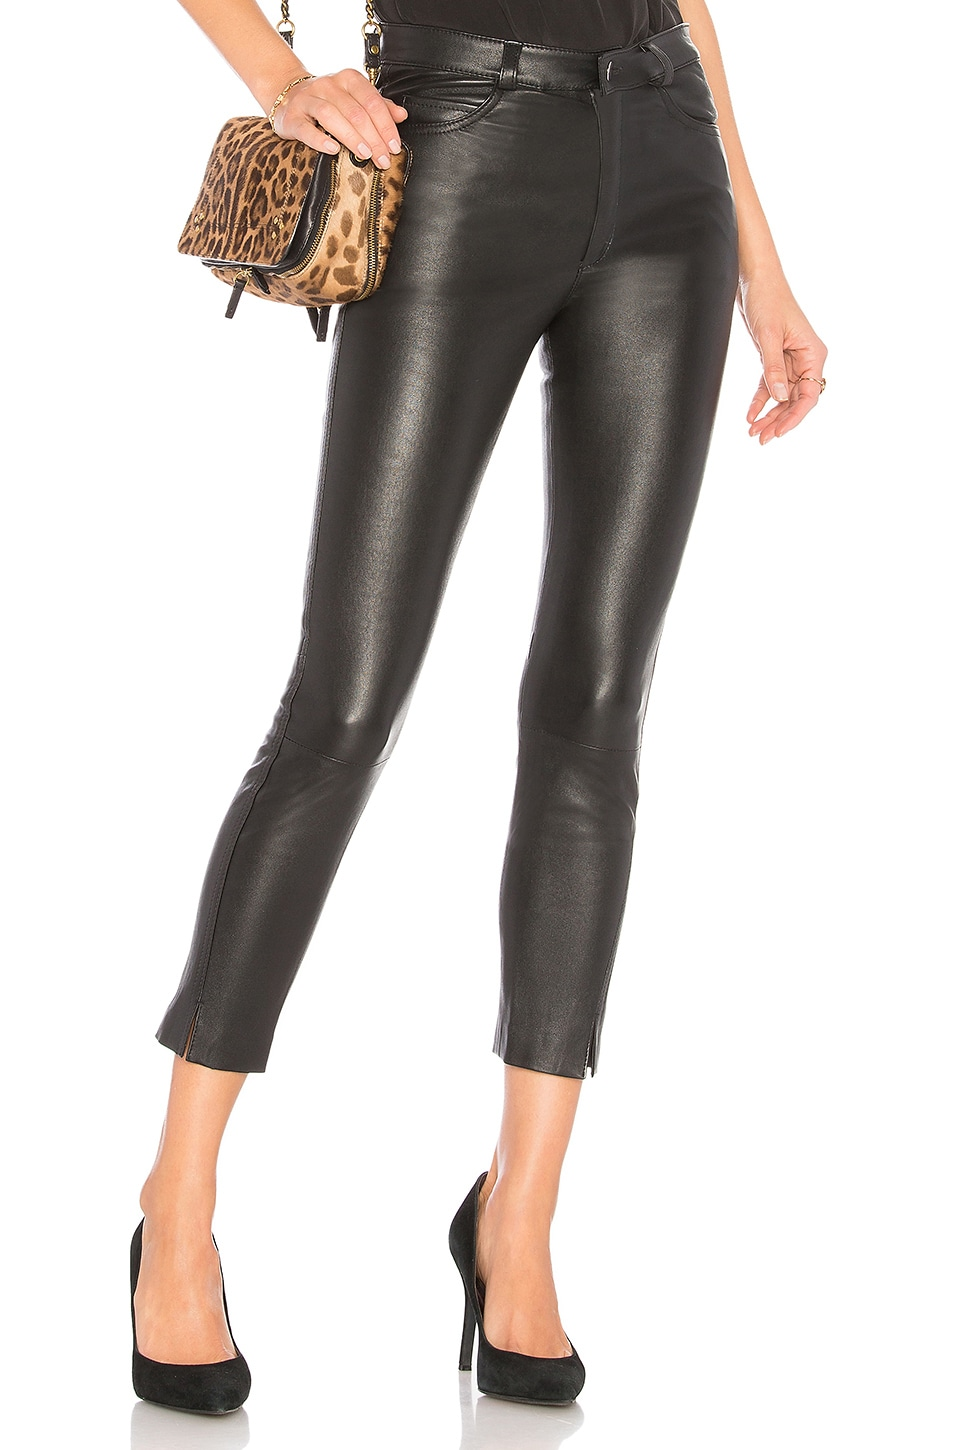 MLML High Rise Twist Jean in Black